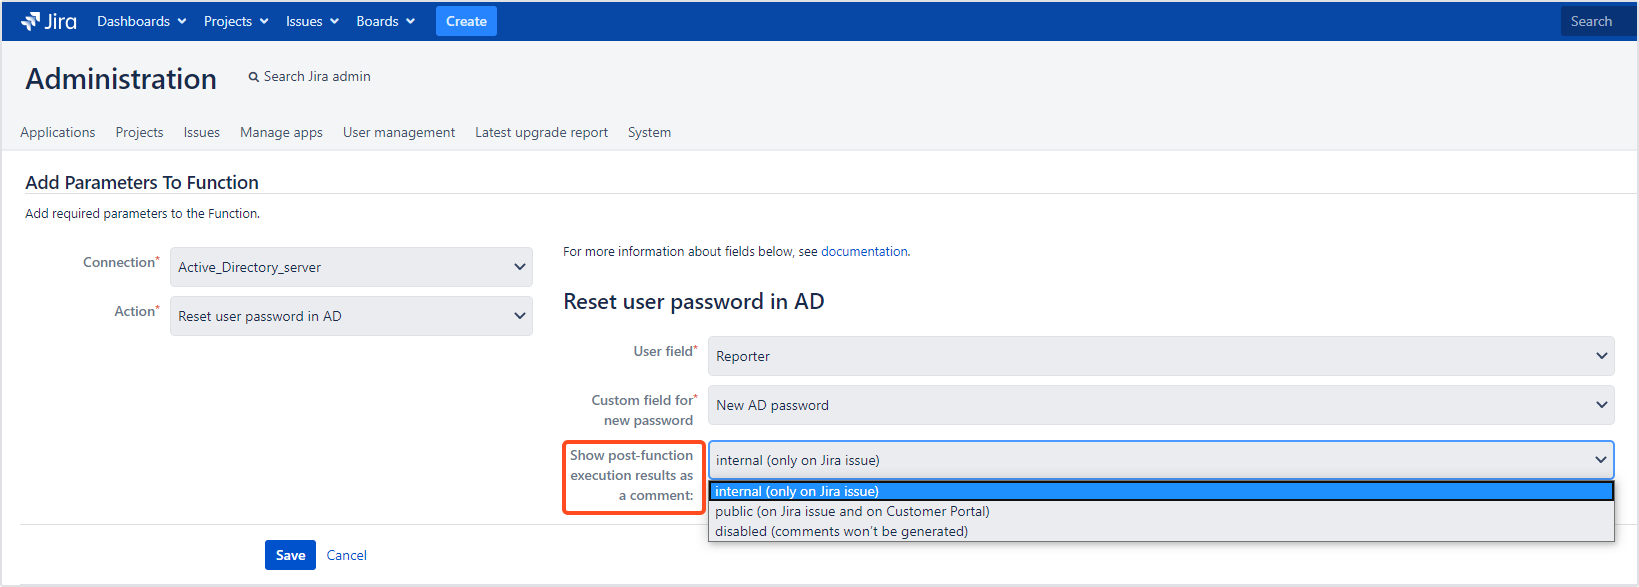 Active Directory Attributes Sync for Jira - Update Data: Adding Comments